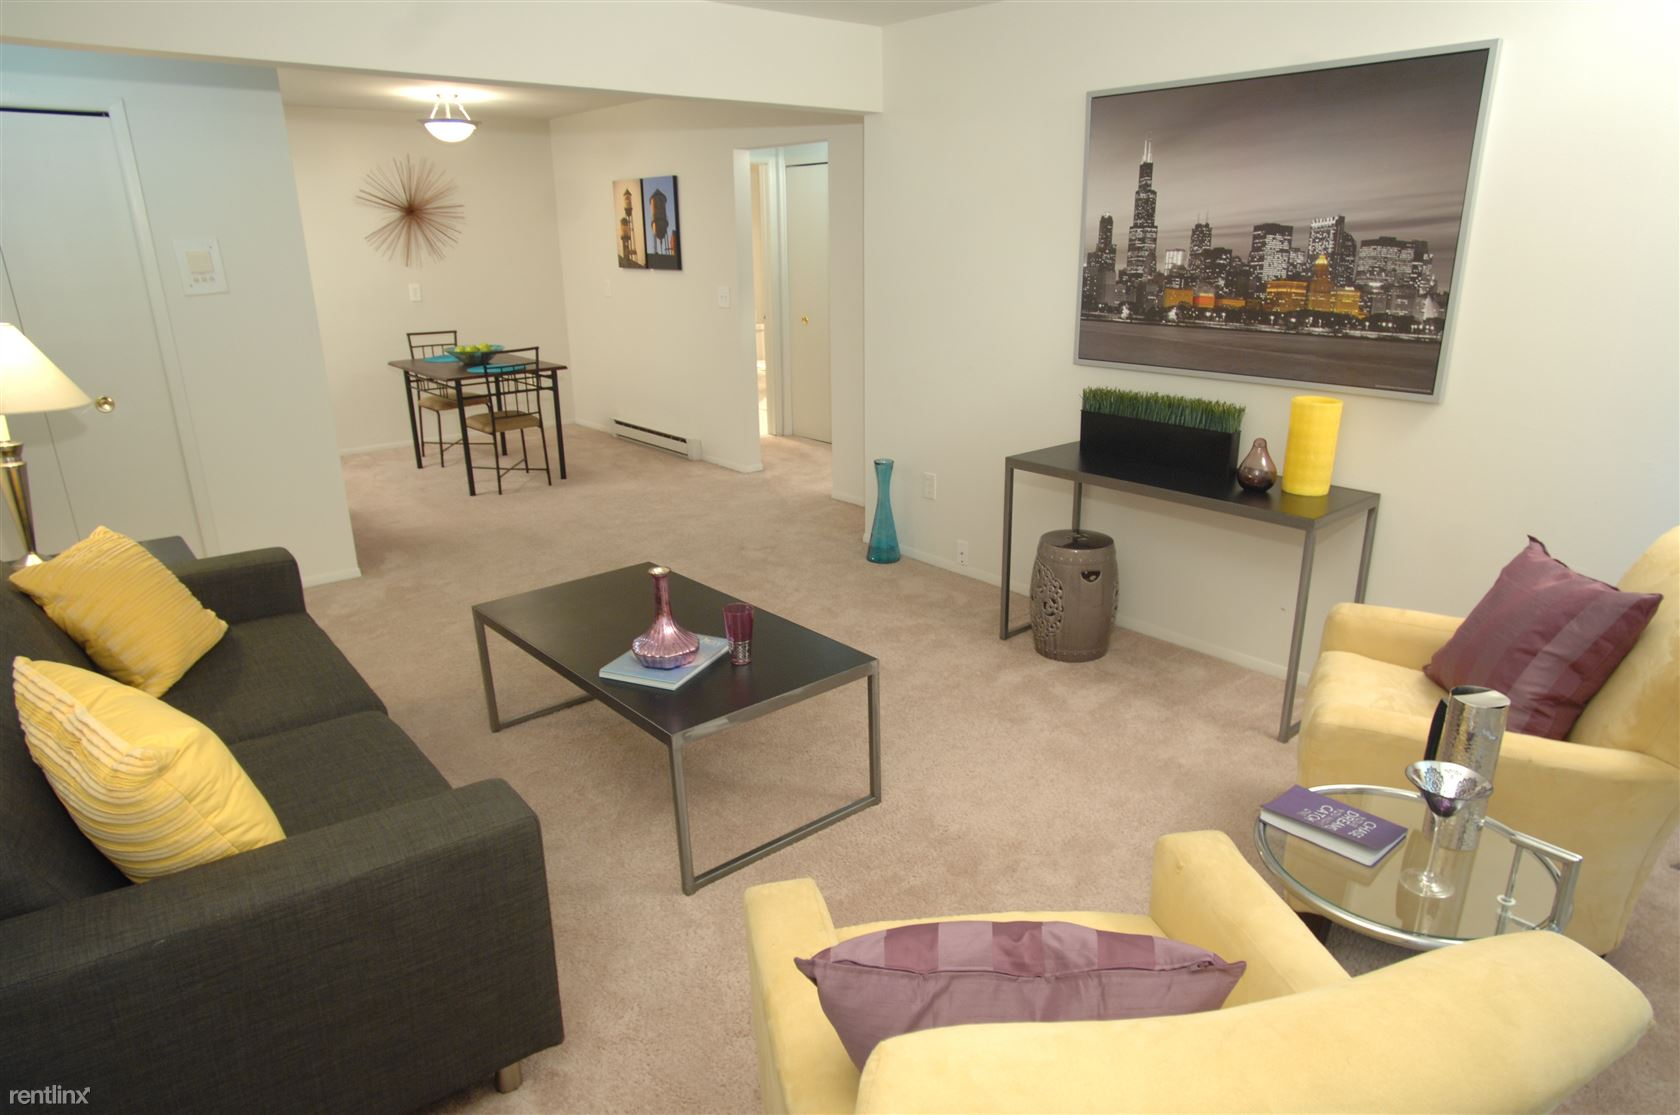 $795 - $810 per month , 501 E Irving Ave, Chatsford Village Apartments